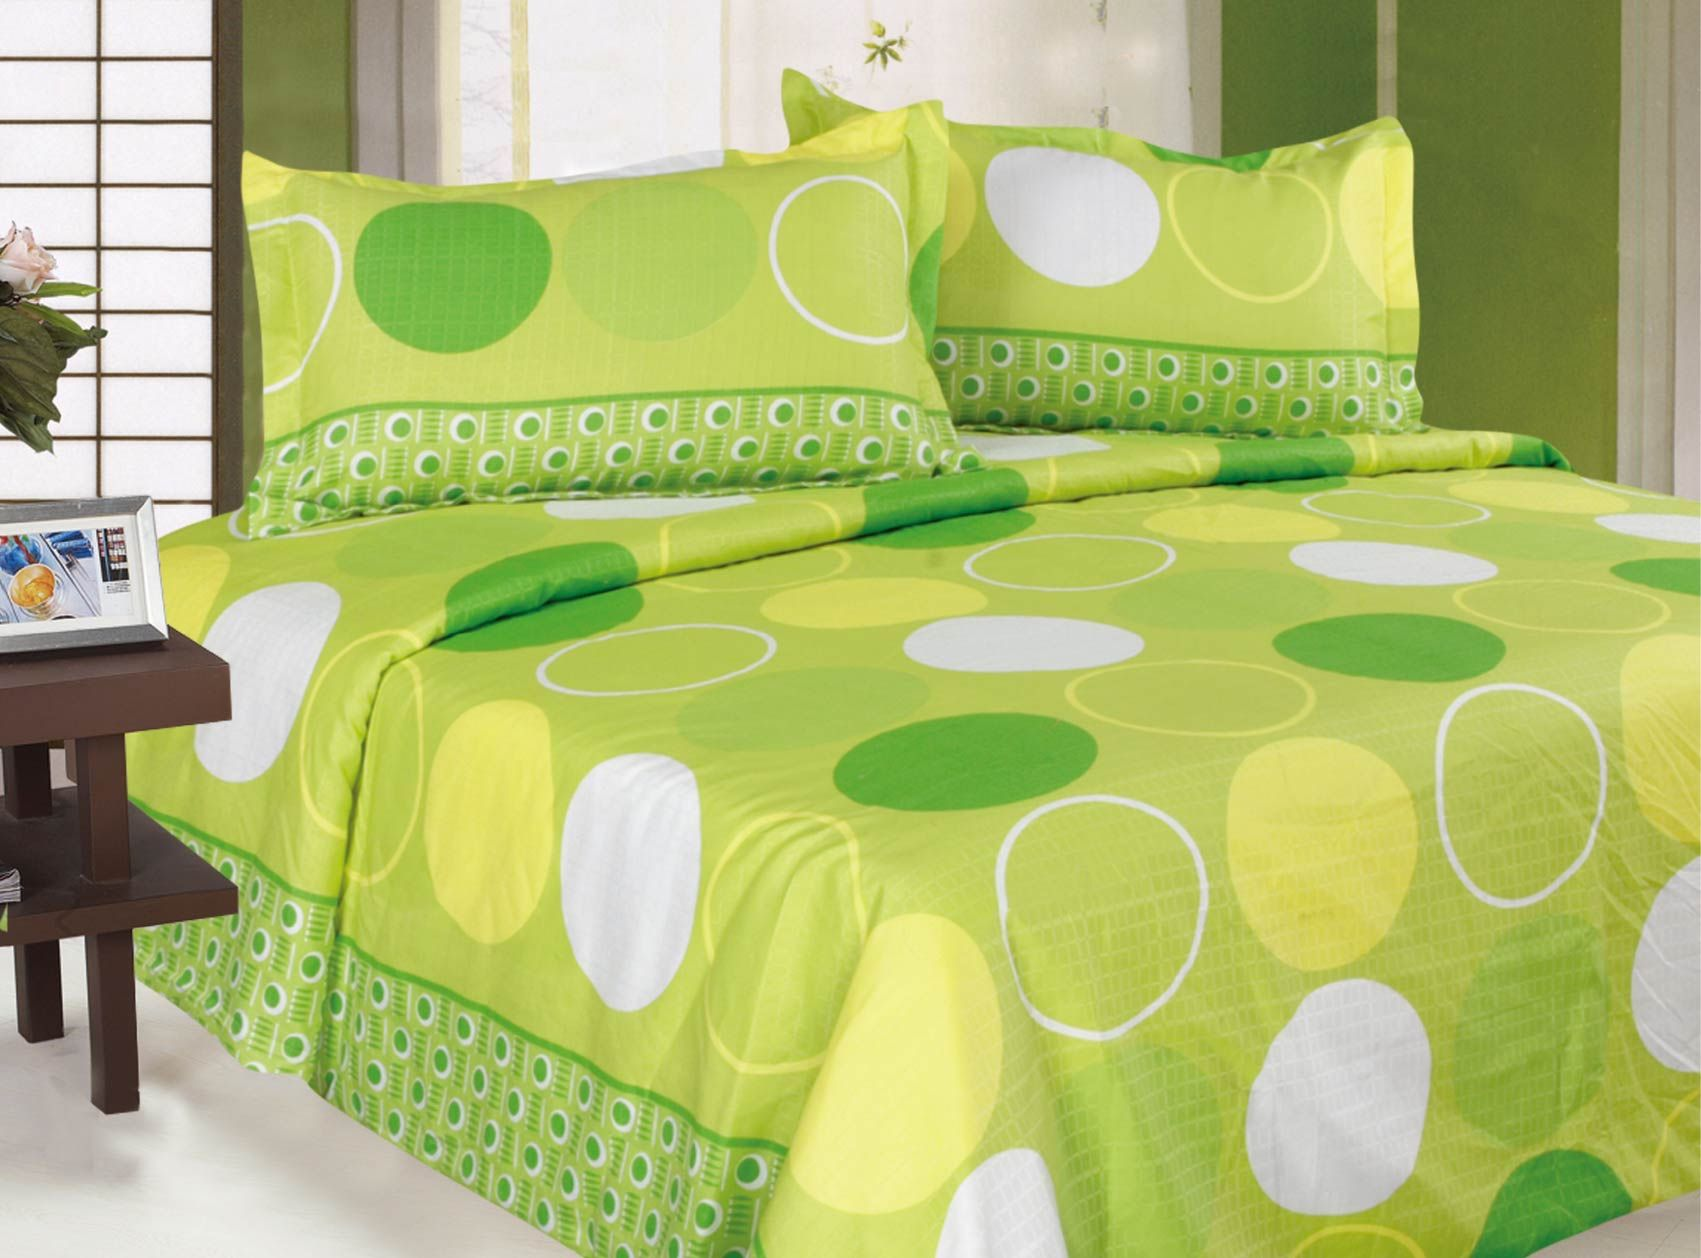 Green bed sheets texture - Discovering Best Bed Sheets Sale Unbelievable Bed Sheets With Dreaded Bedding For Platform Beds And Platform Bed Set In Green Color Scheme